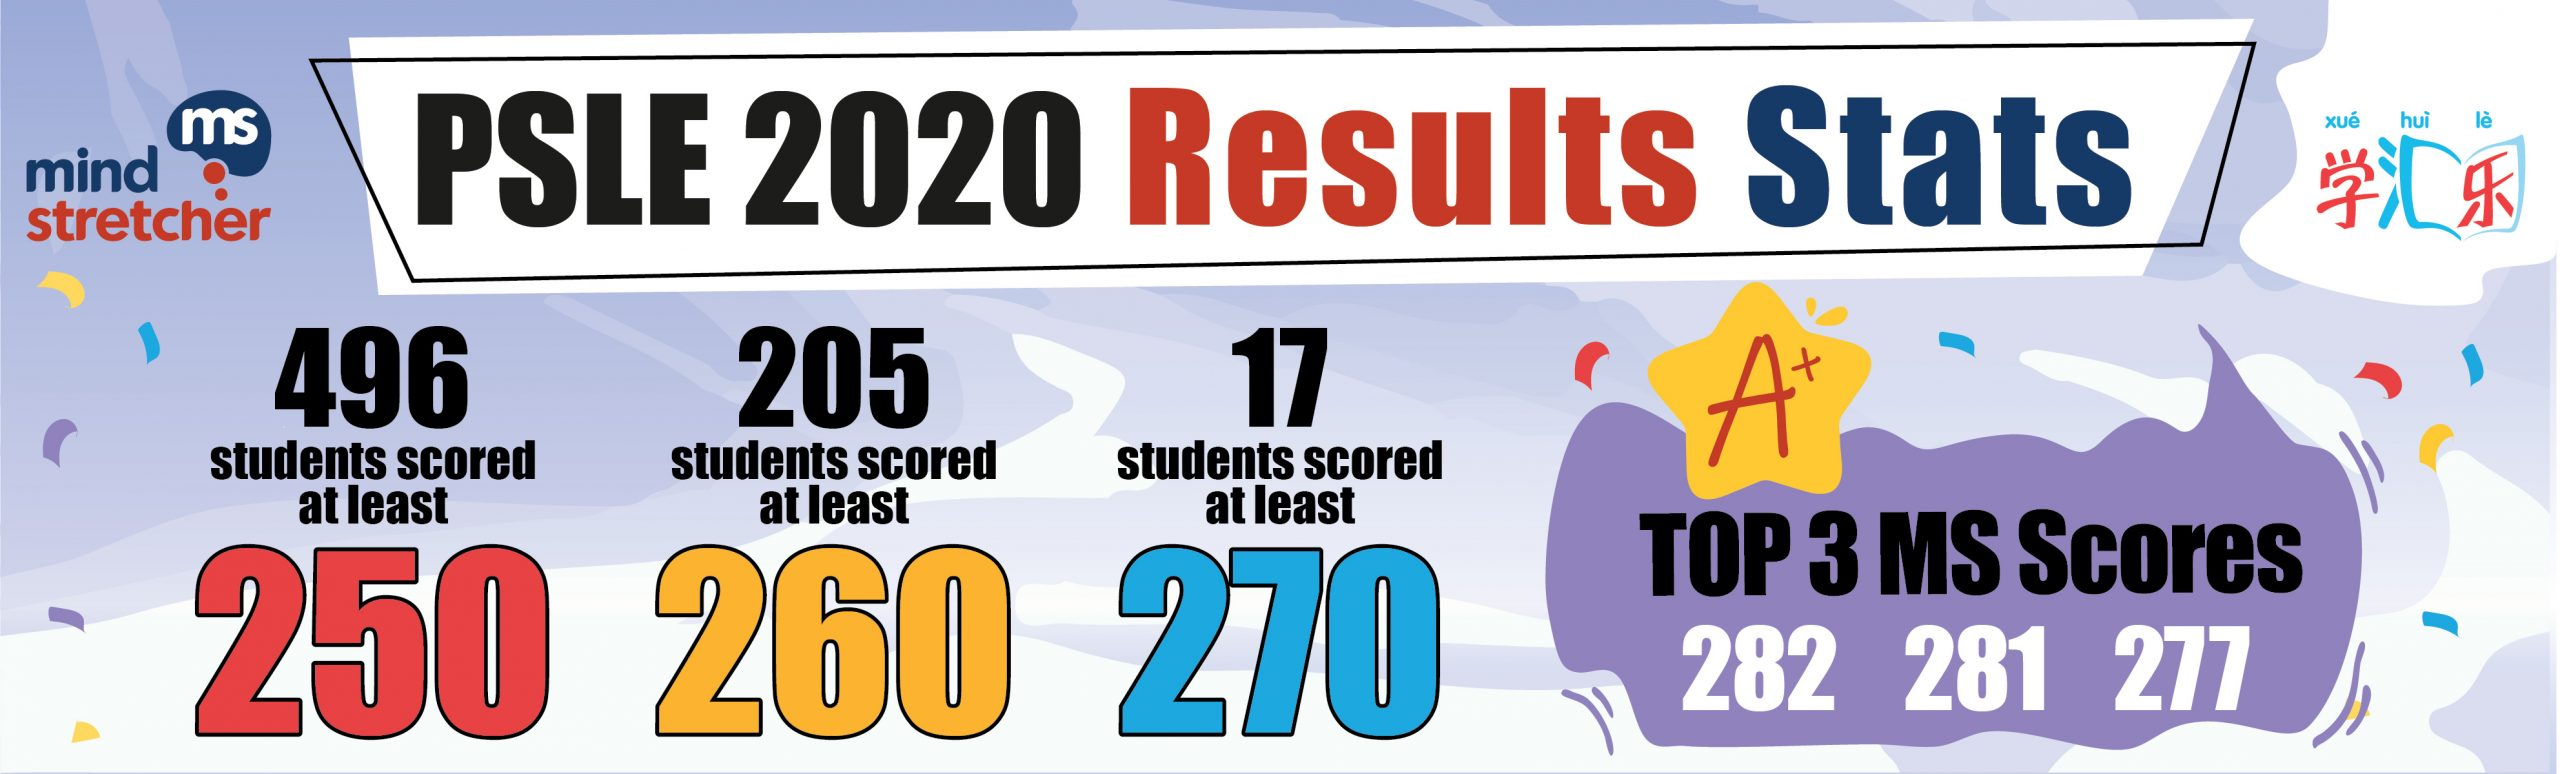 MS PSLE Results